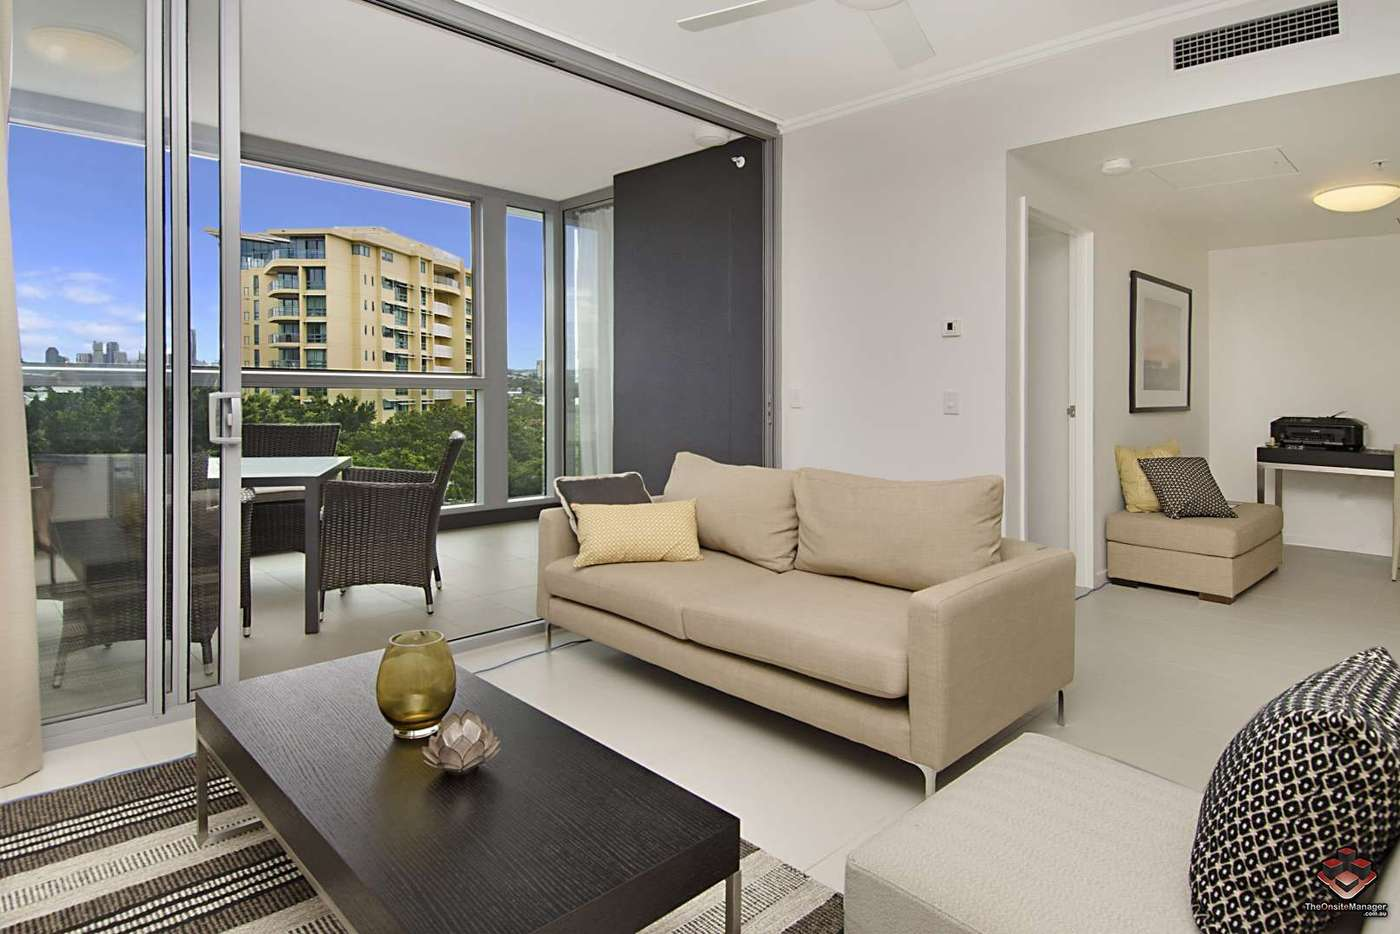 Main view of Homely apartment listing, ID:3907230/ 2 Harbour, Hamilton QLD 4007